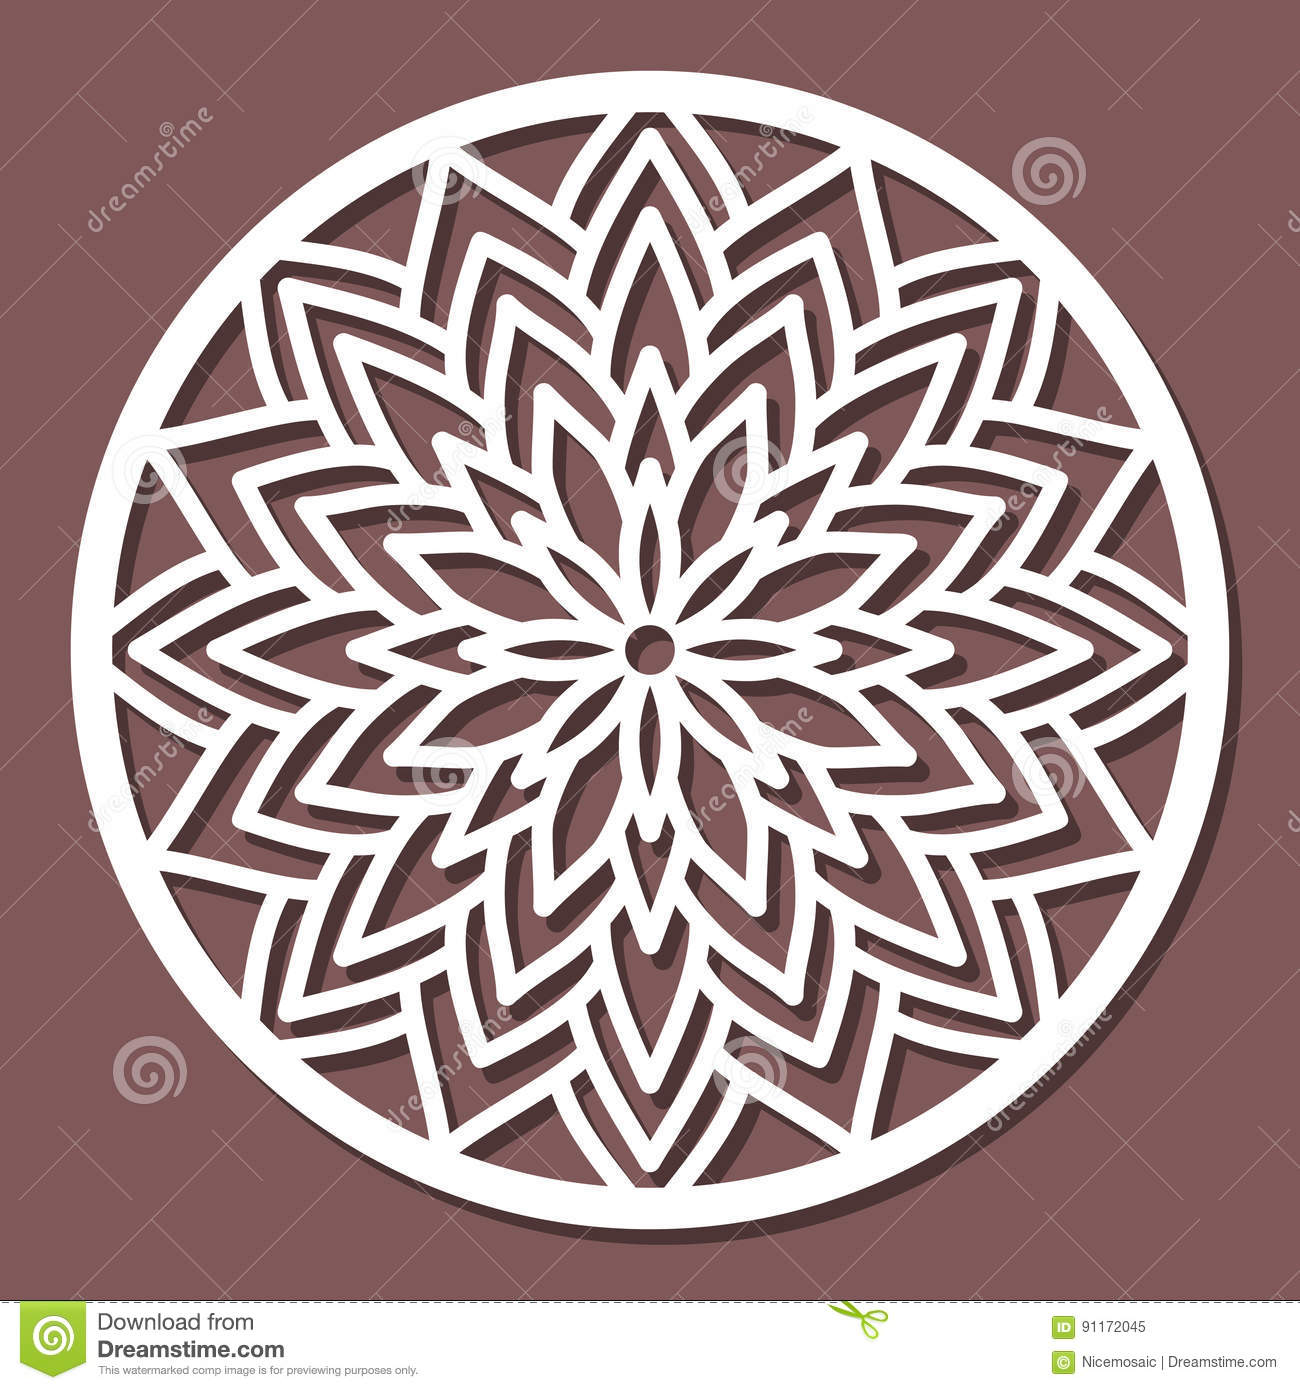 vector stencil lacy round ornament mandala with carved openwork